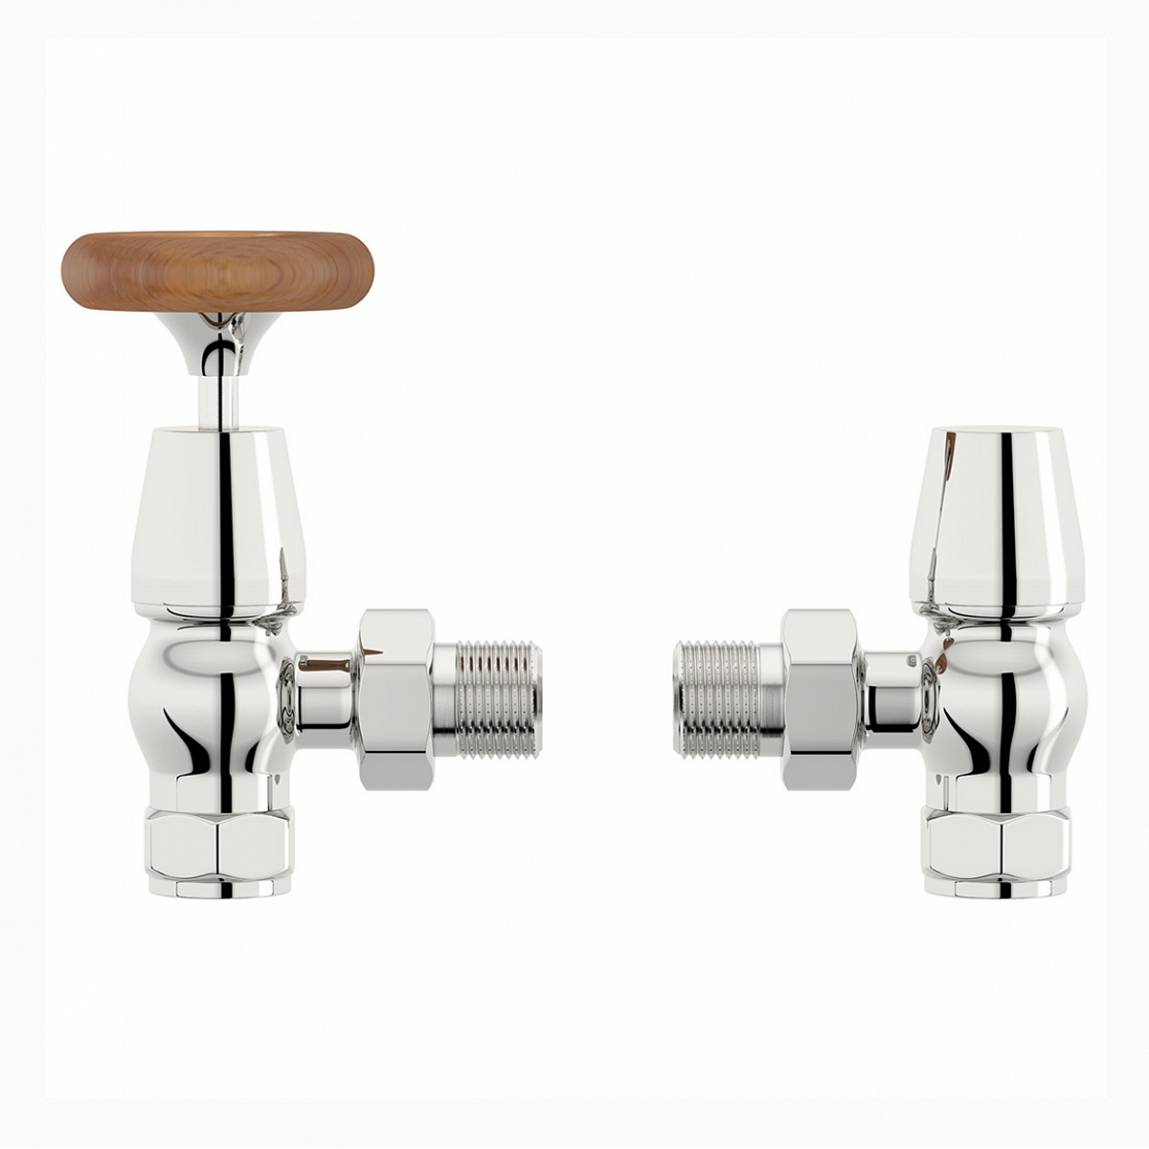 Image of Traditional Angled Radiator Valves with Brown Handle